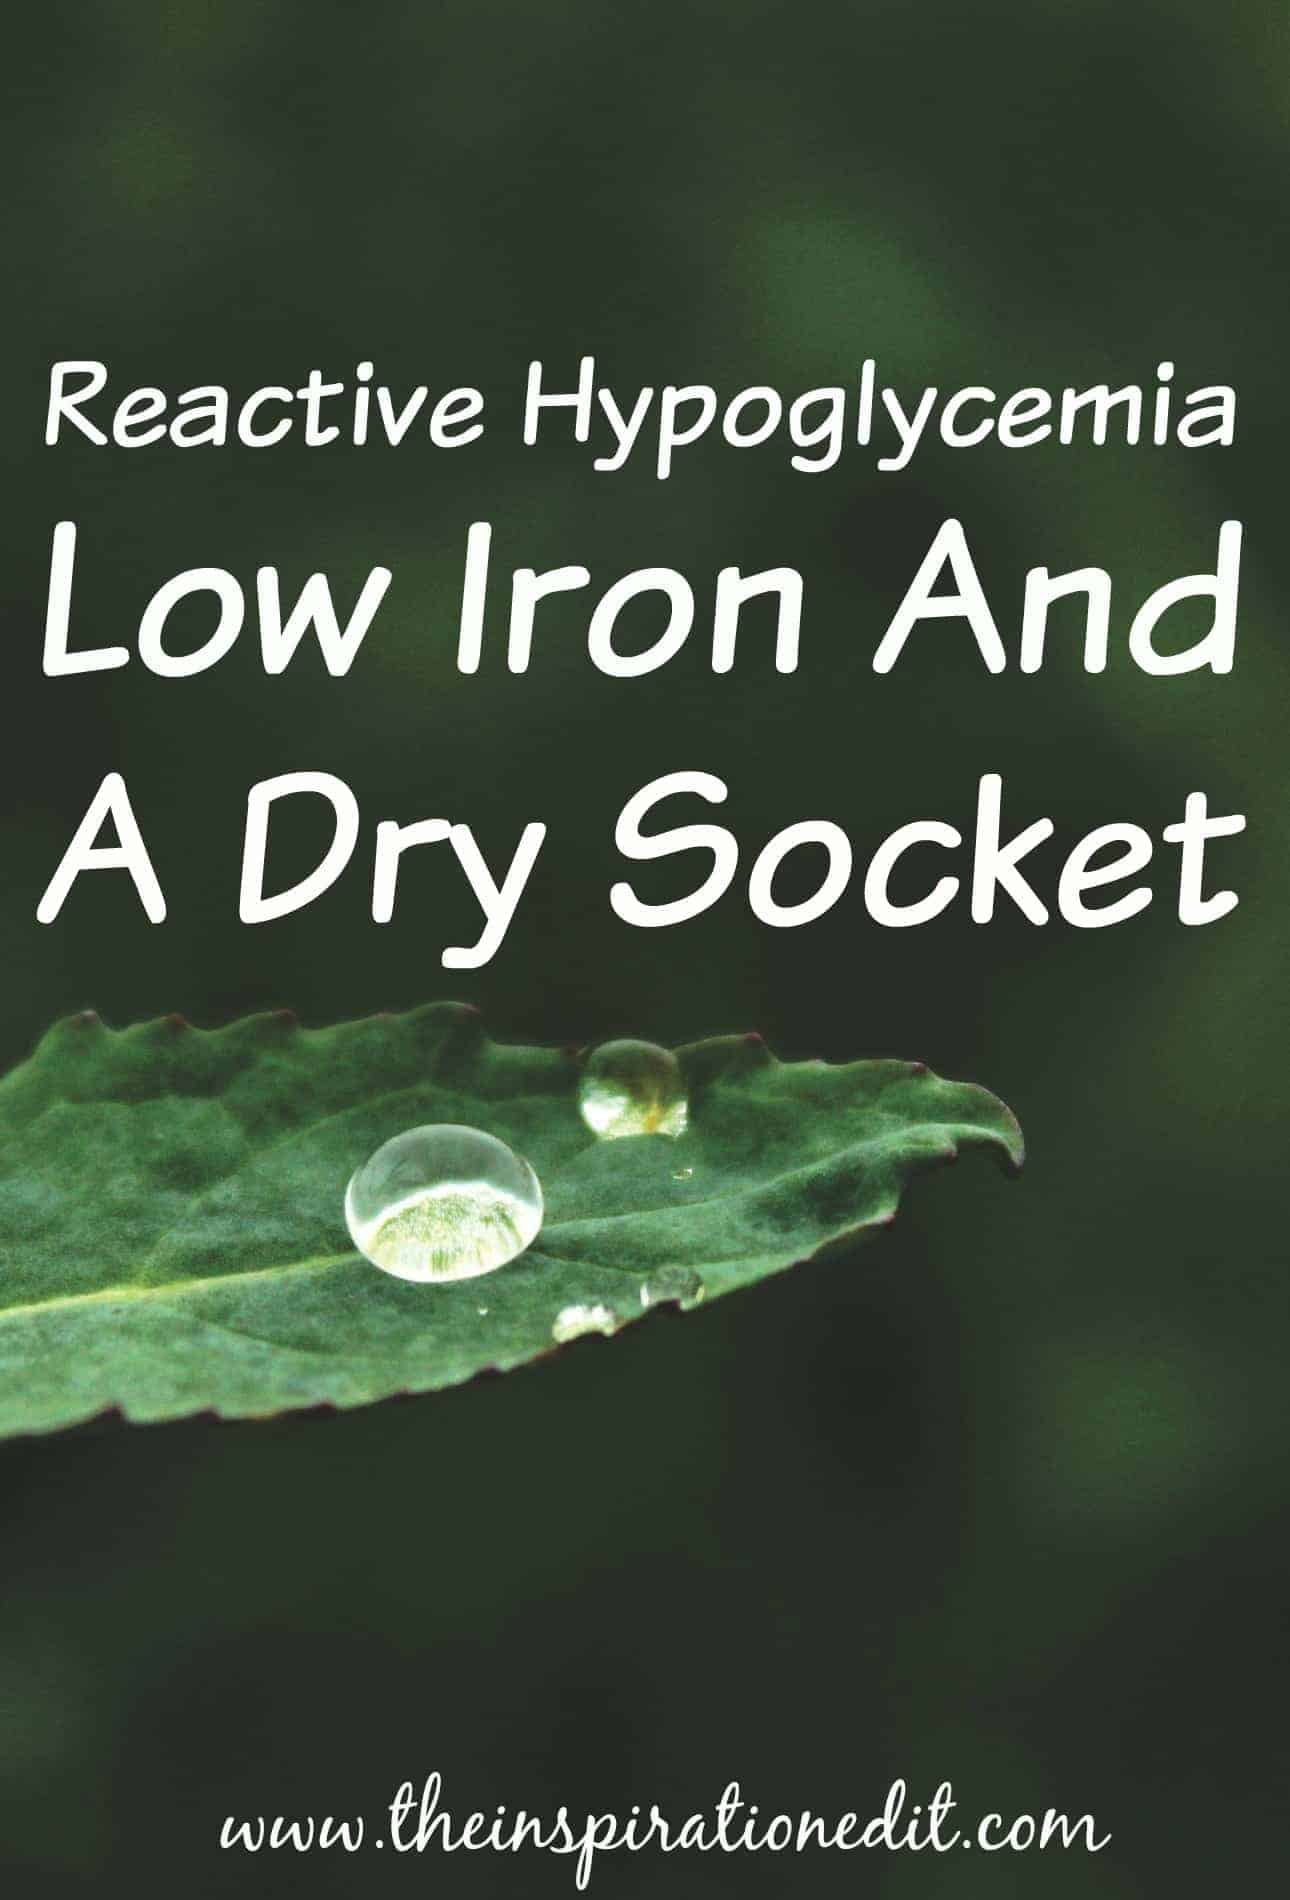 reactive hypoglycemia, low iron and a dry socket